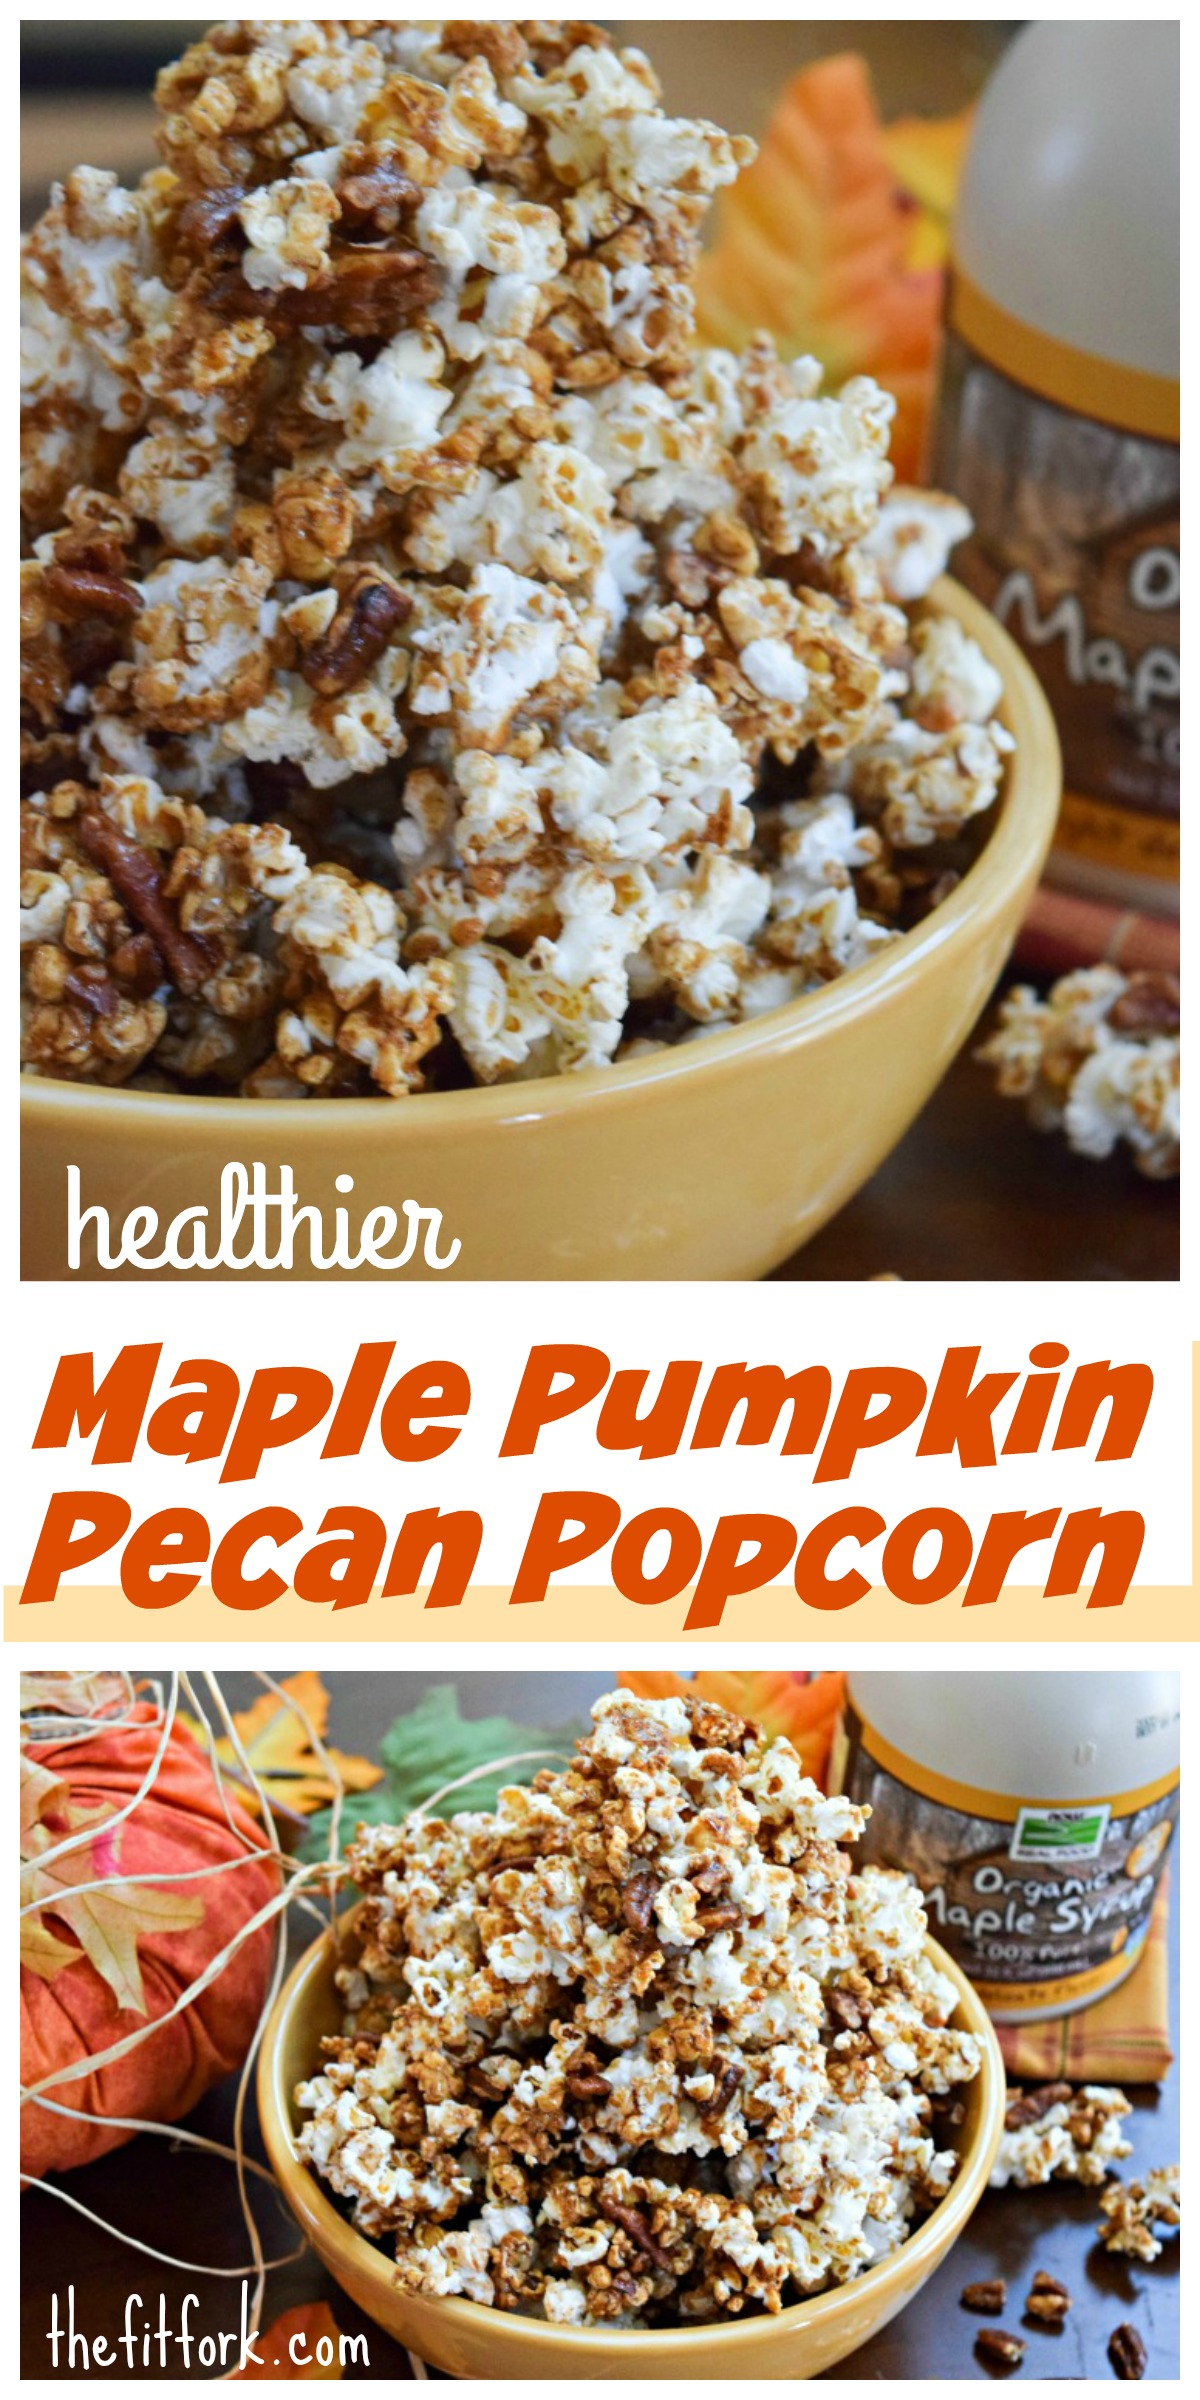 Maple Pumpkin Pecan Popcorn features all the flavors of fall an healthier sugar alternatives!